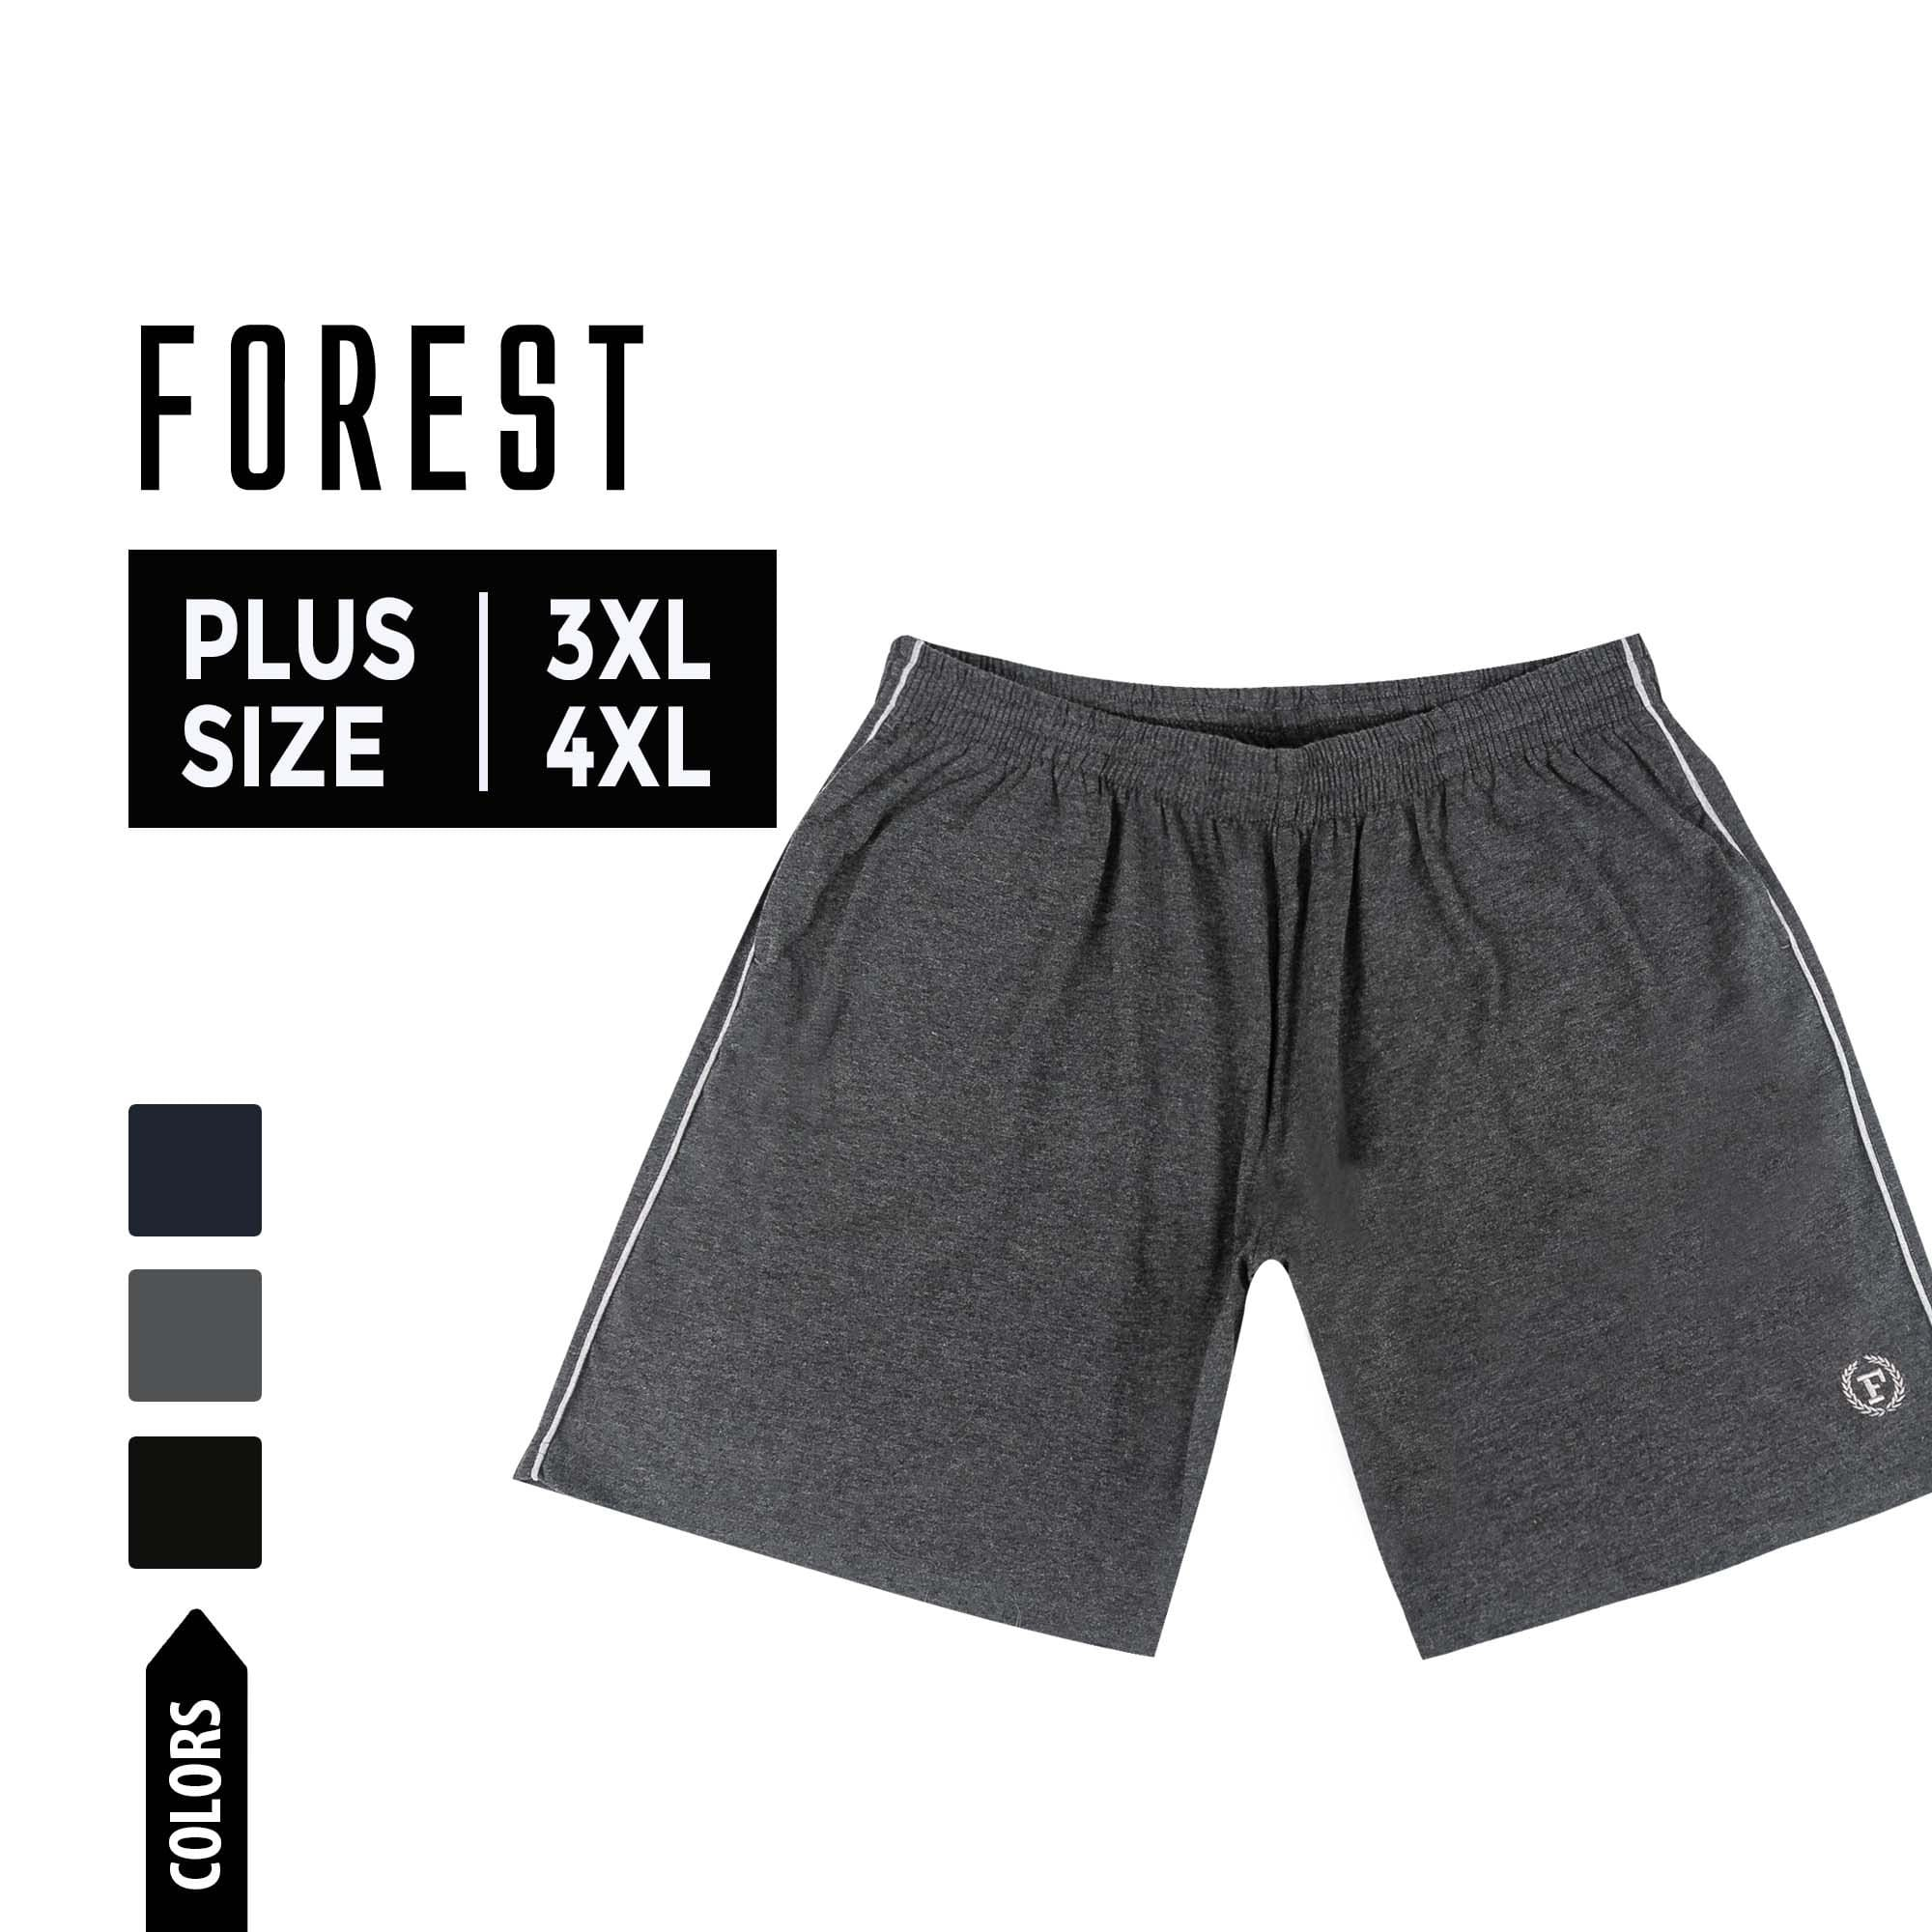 Plus Size Casual Short Pants - 65631